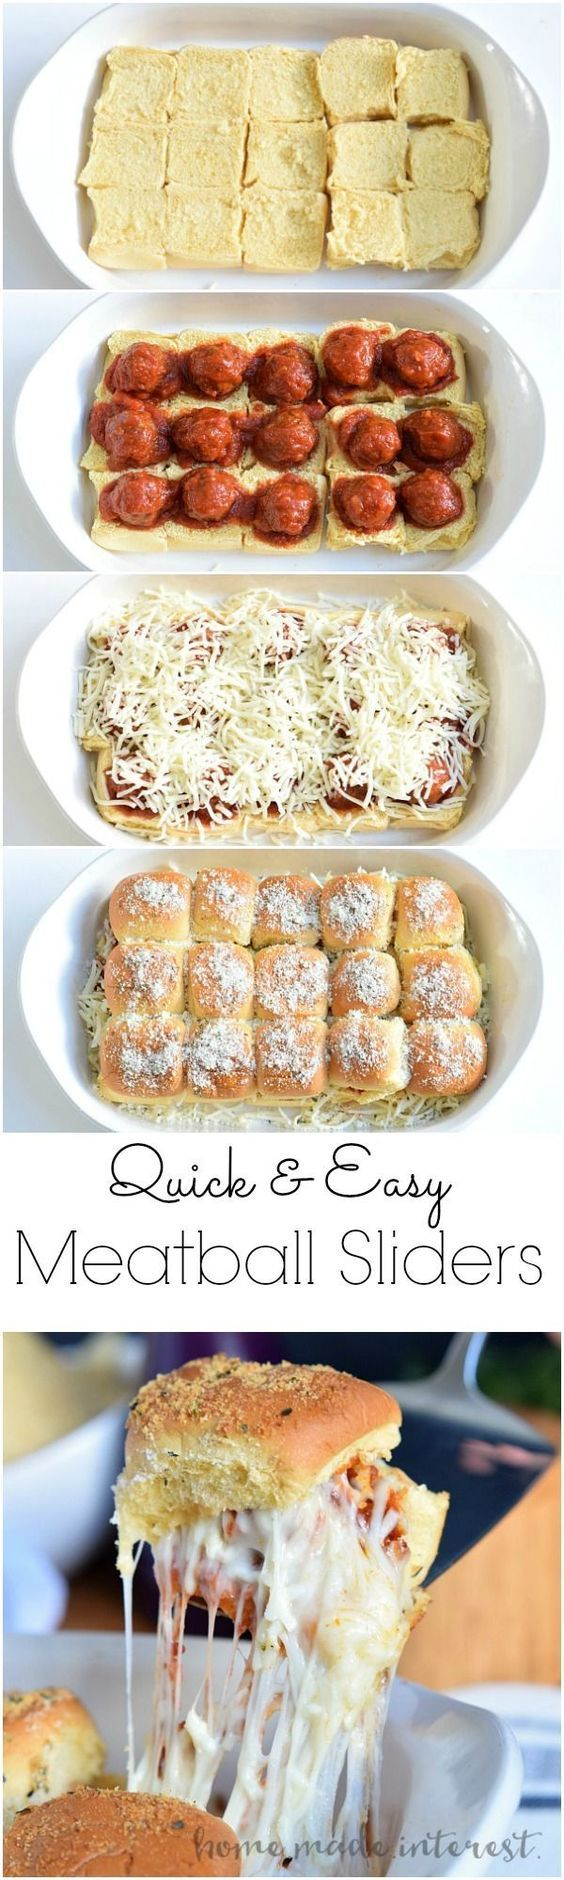 These cheesy Meatball Sliders are an easy appetizer recipe for game day. Make them for your next party! This easy slider recipe is a football party food everyone will love. Make this easy appetizer recipe as a tailgating recipe or serve it to friends at your Super bowl party! AD